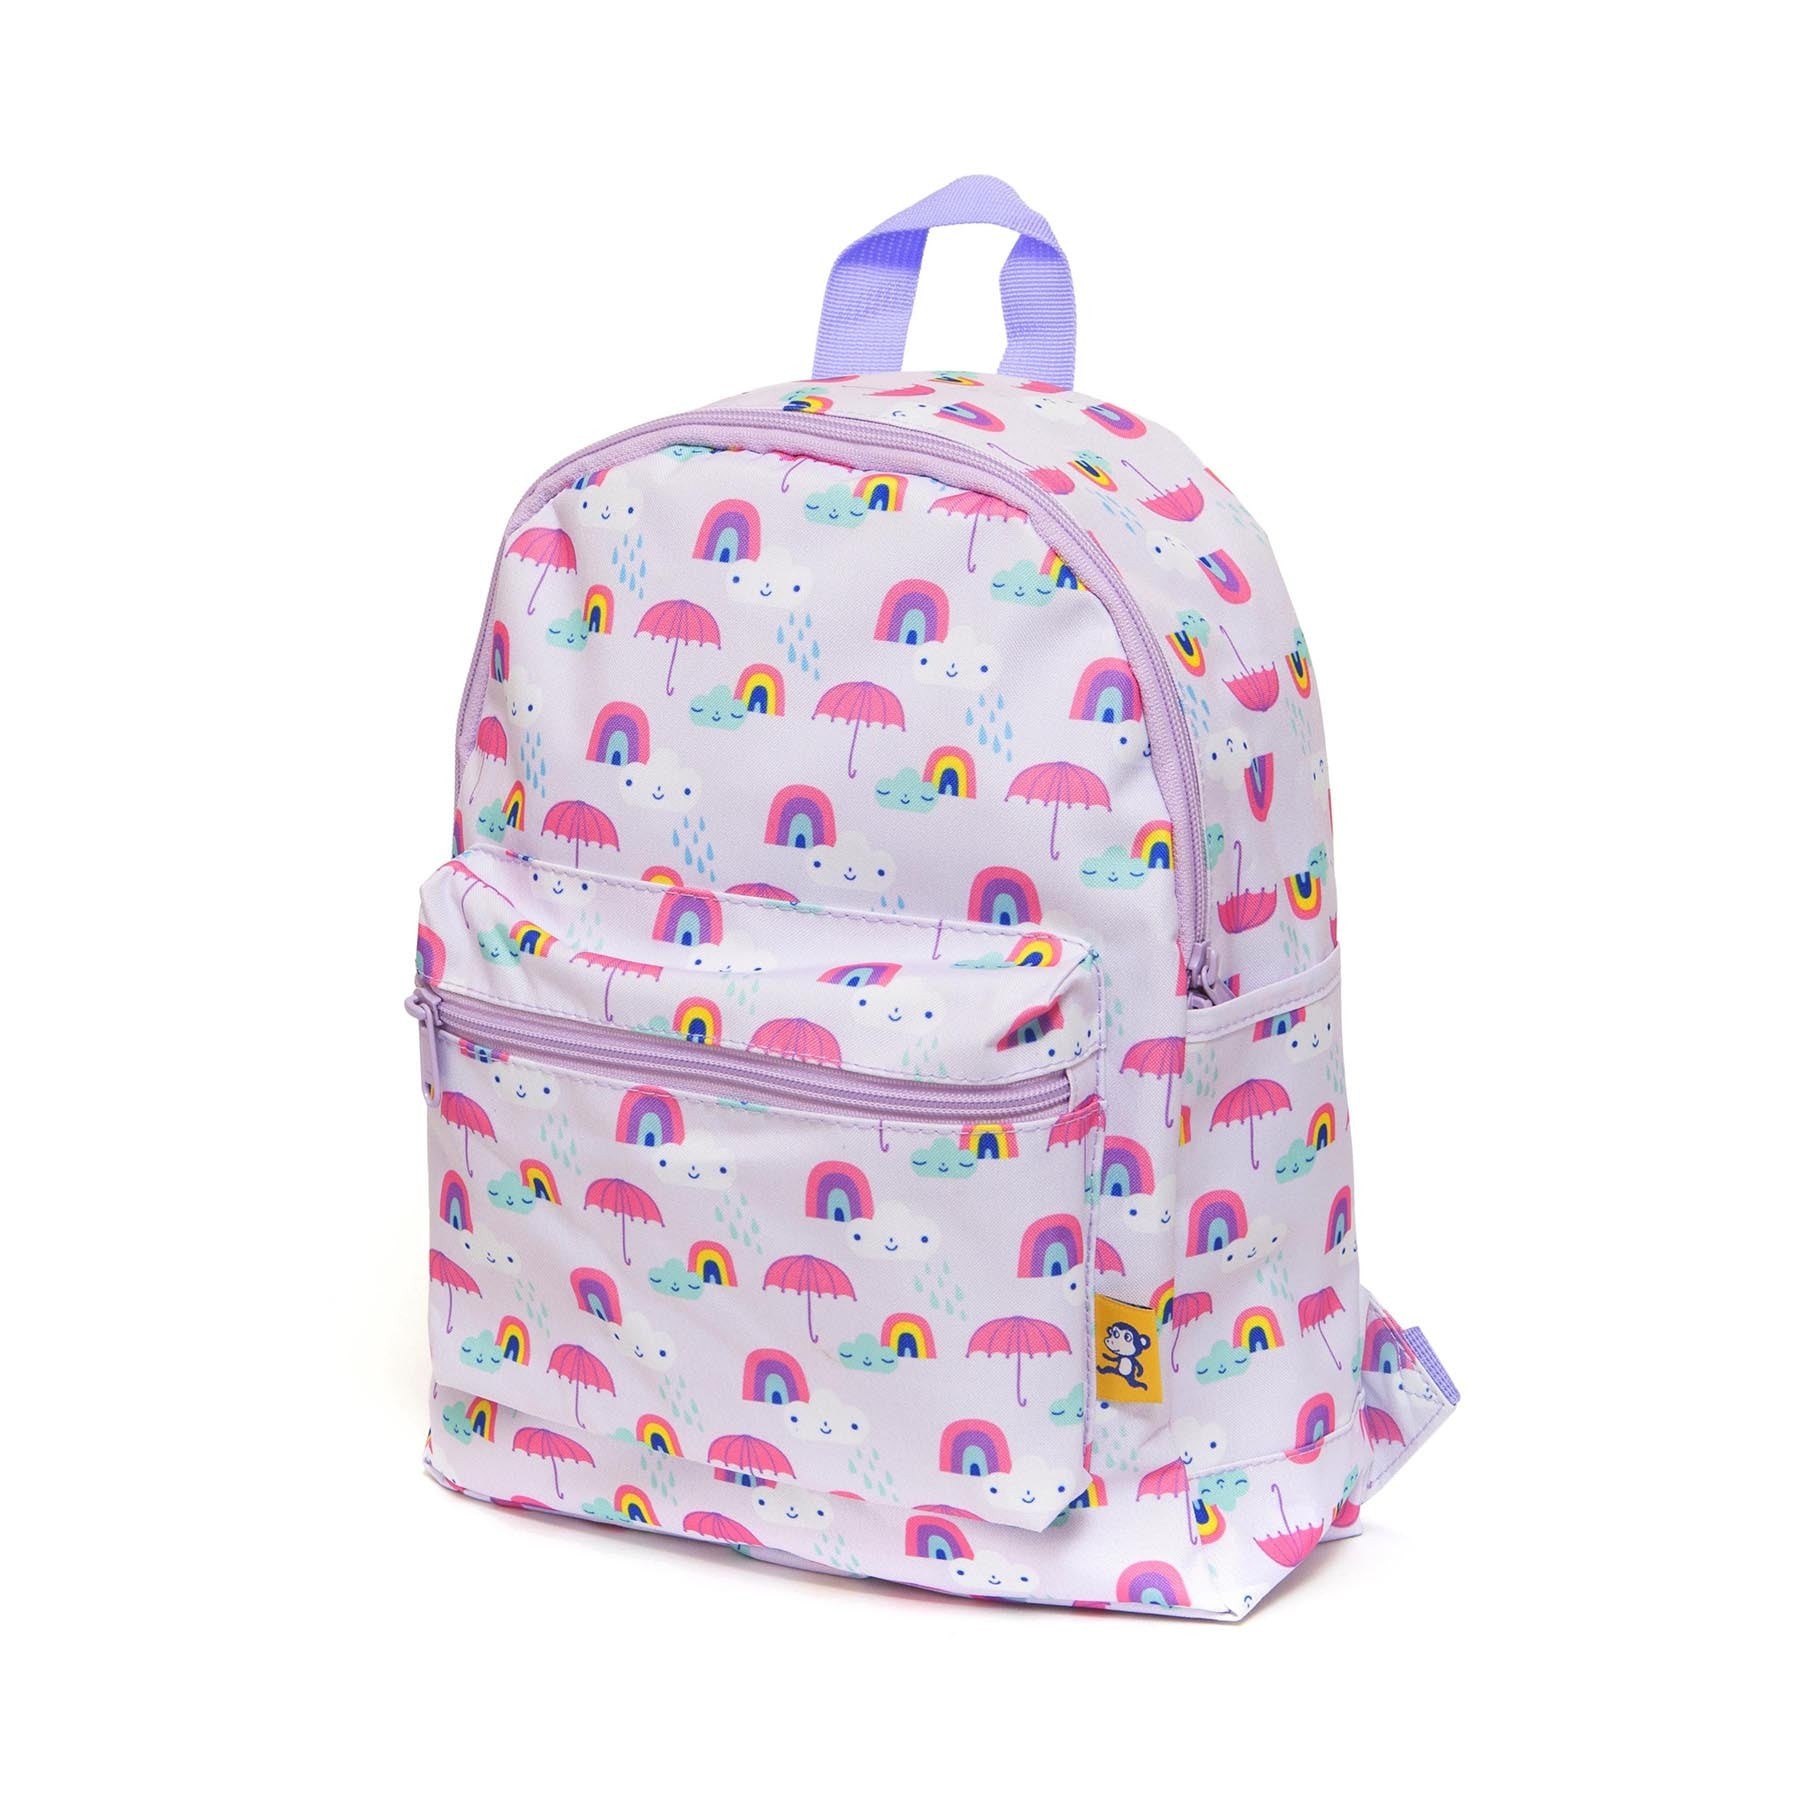 Rainy Days Backpack by Petit Monkey - Little Citizens Boutique  - 1